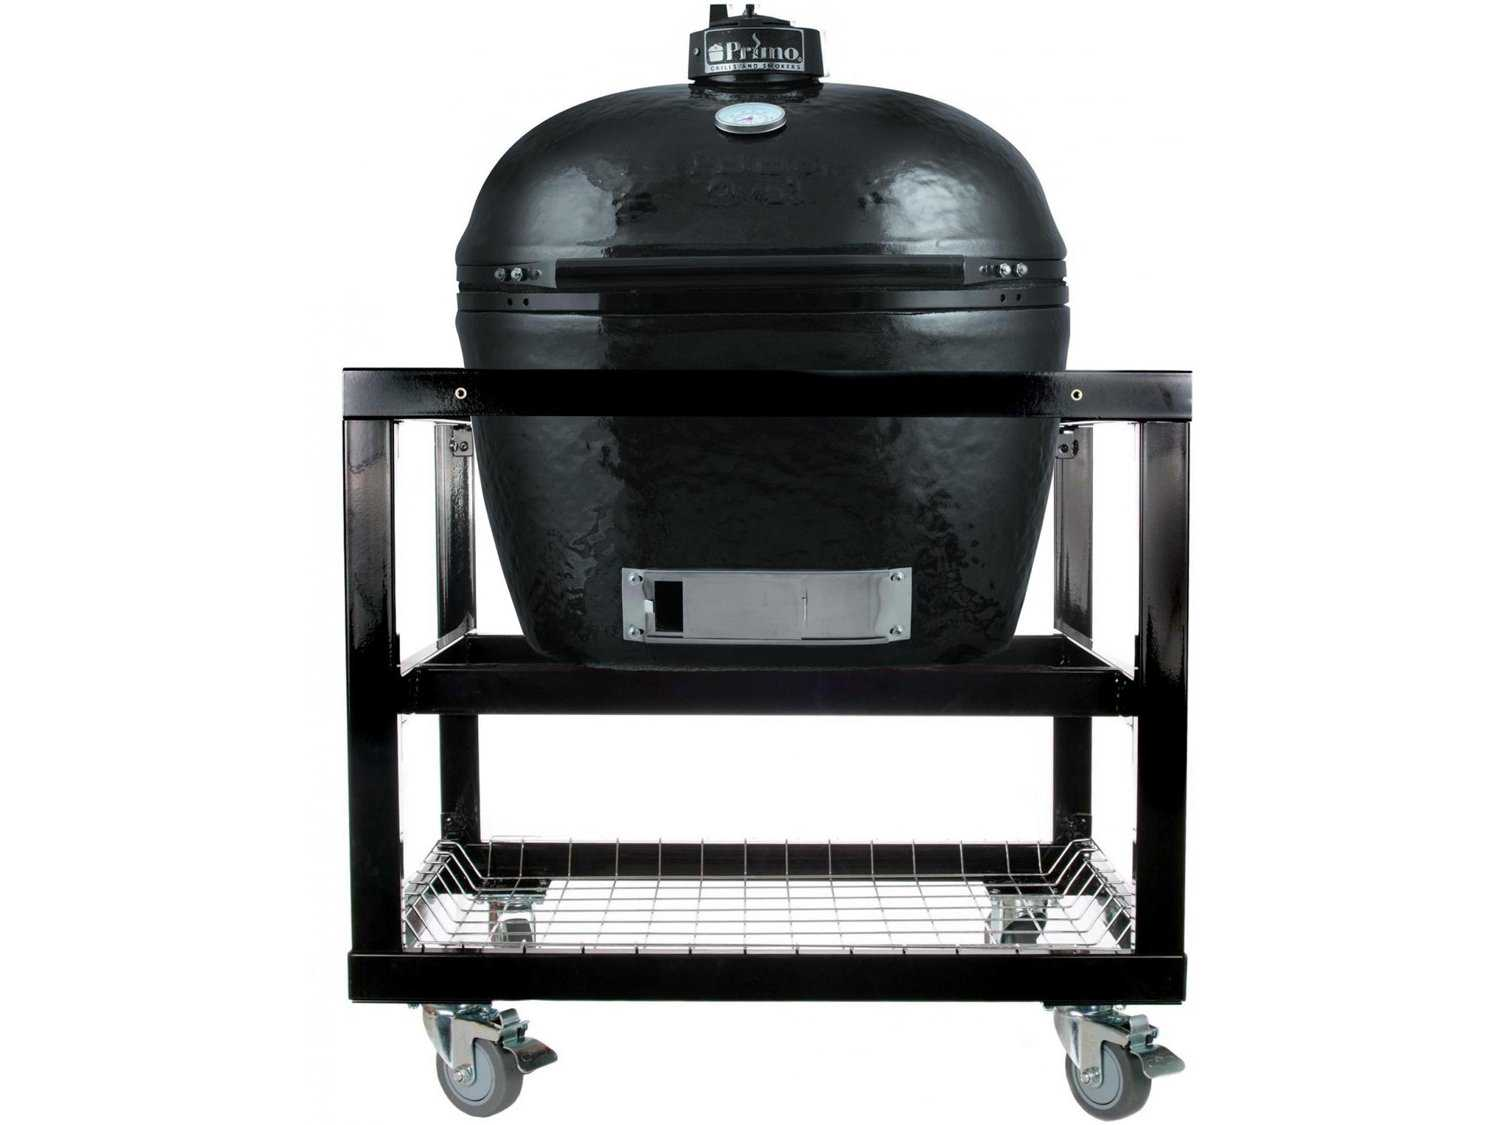 Primo Oval 400 XL Ceramic Smoker In Steel Cart PRXLCART1 : PMPRXLCART11zm from luxedecor.com size 1500 x 1125 jpeg 64kB